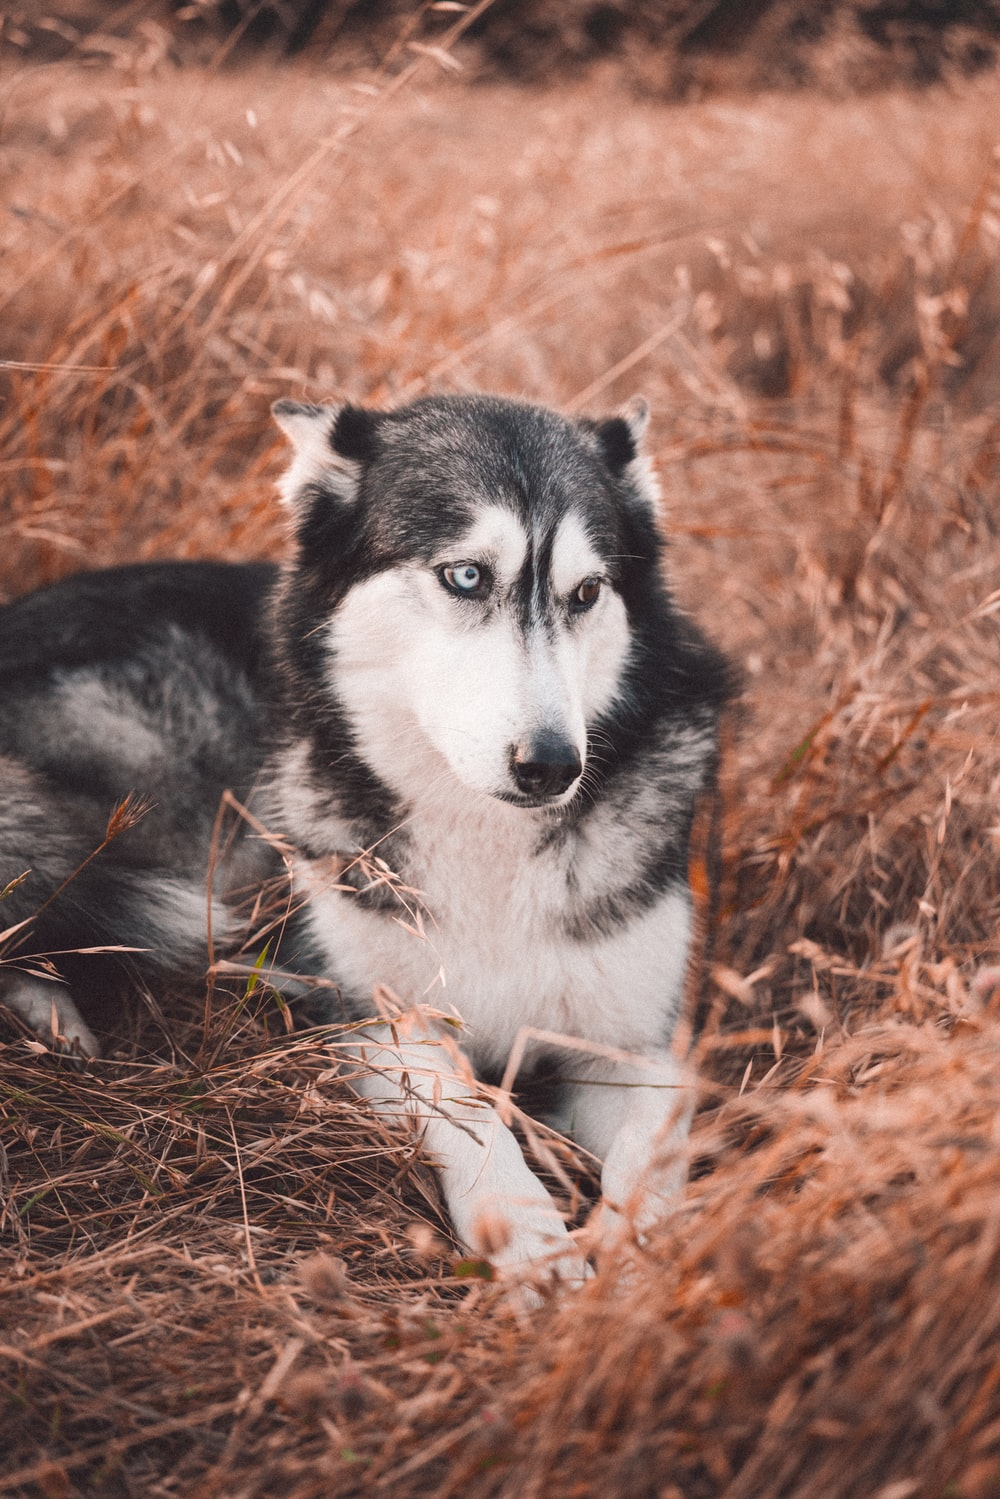 black and white siberian husky puppy on brown grass field during daytime